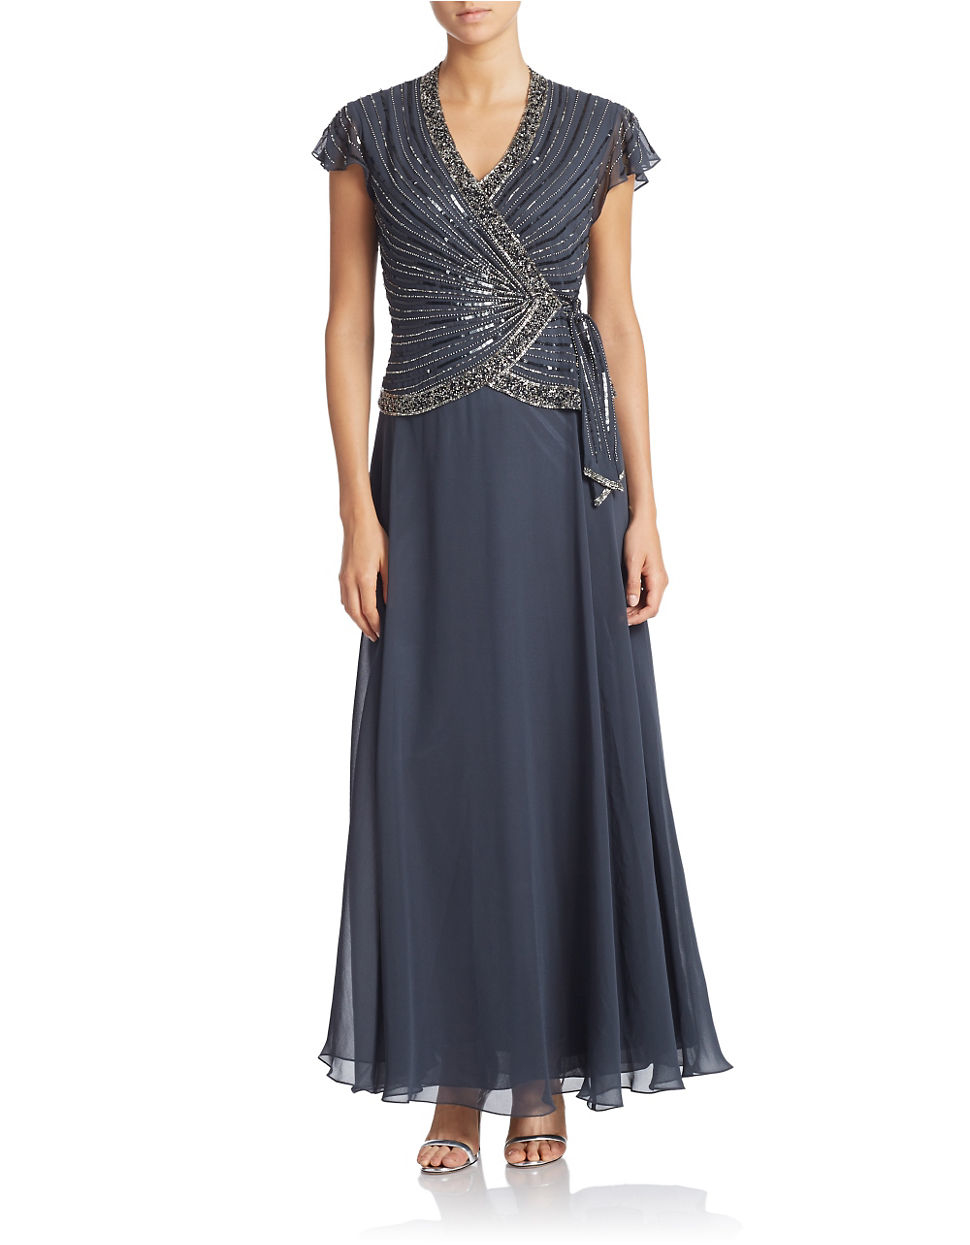 J Kara Petite Evening Gowns_Evening Dresses_dressesss